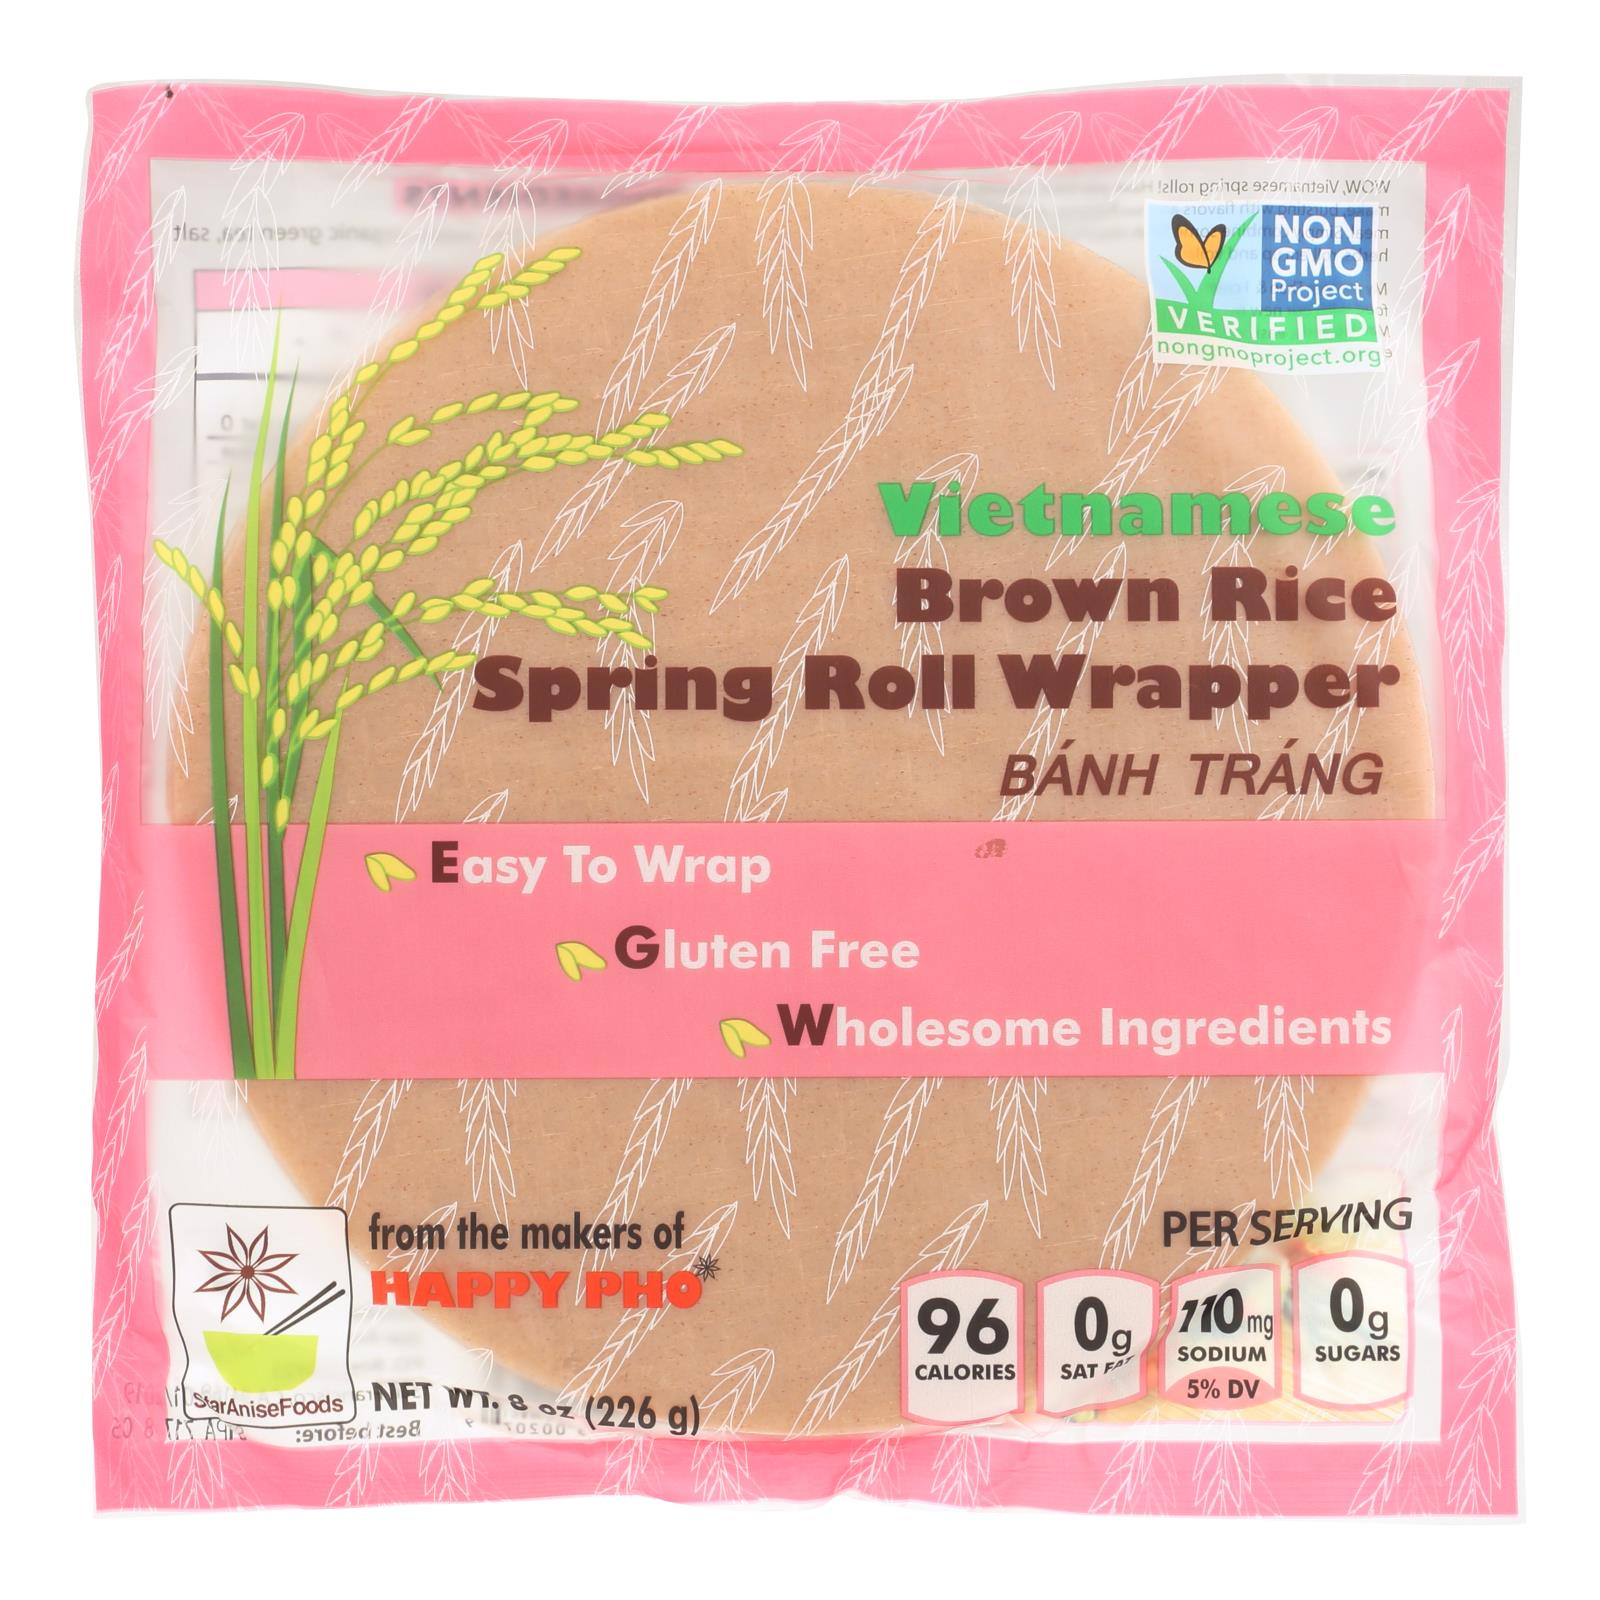 Star Anise Foods Spring Roll Wrapper - Brown Rice - Vietnamese - 8 oz - case of 6